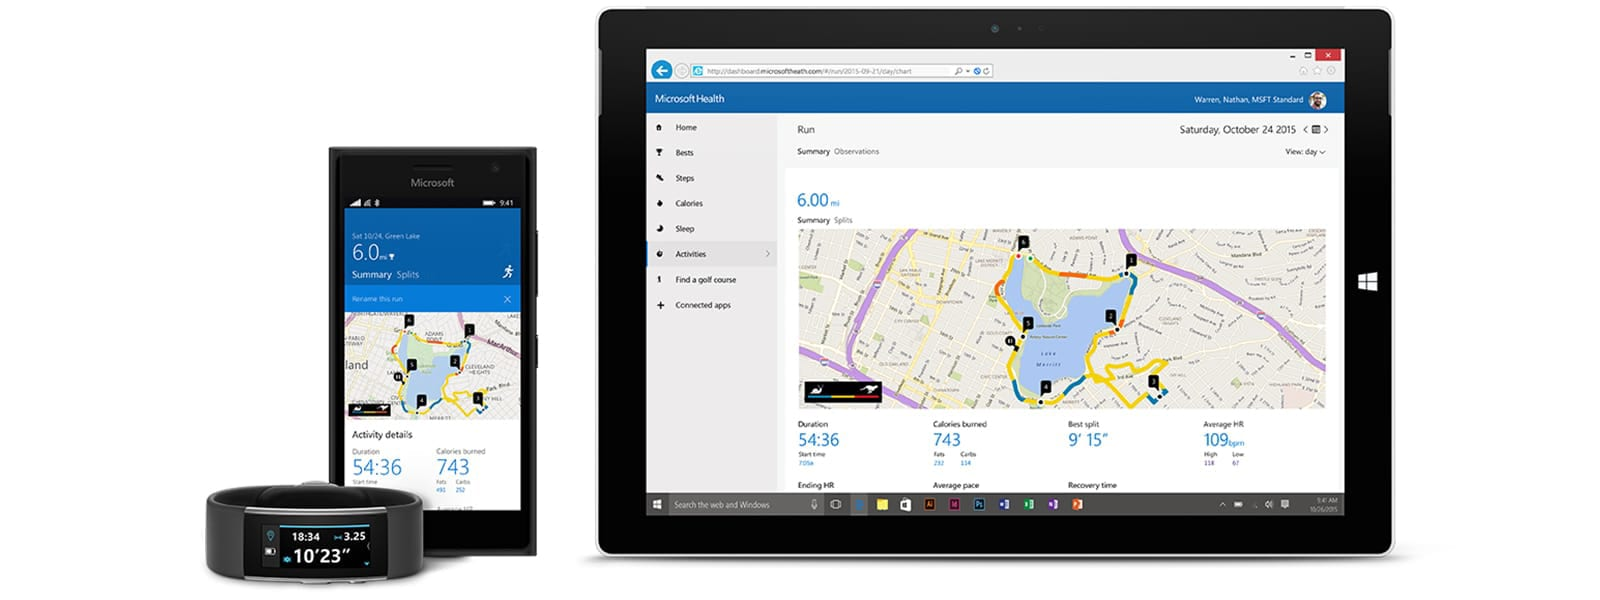 a microsoft band a smartphone and a tablet showing the microsoft health app on their